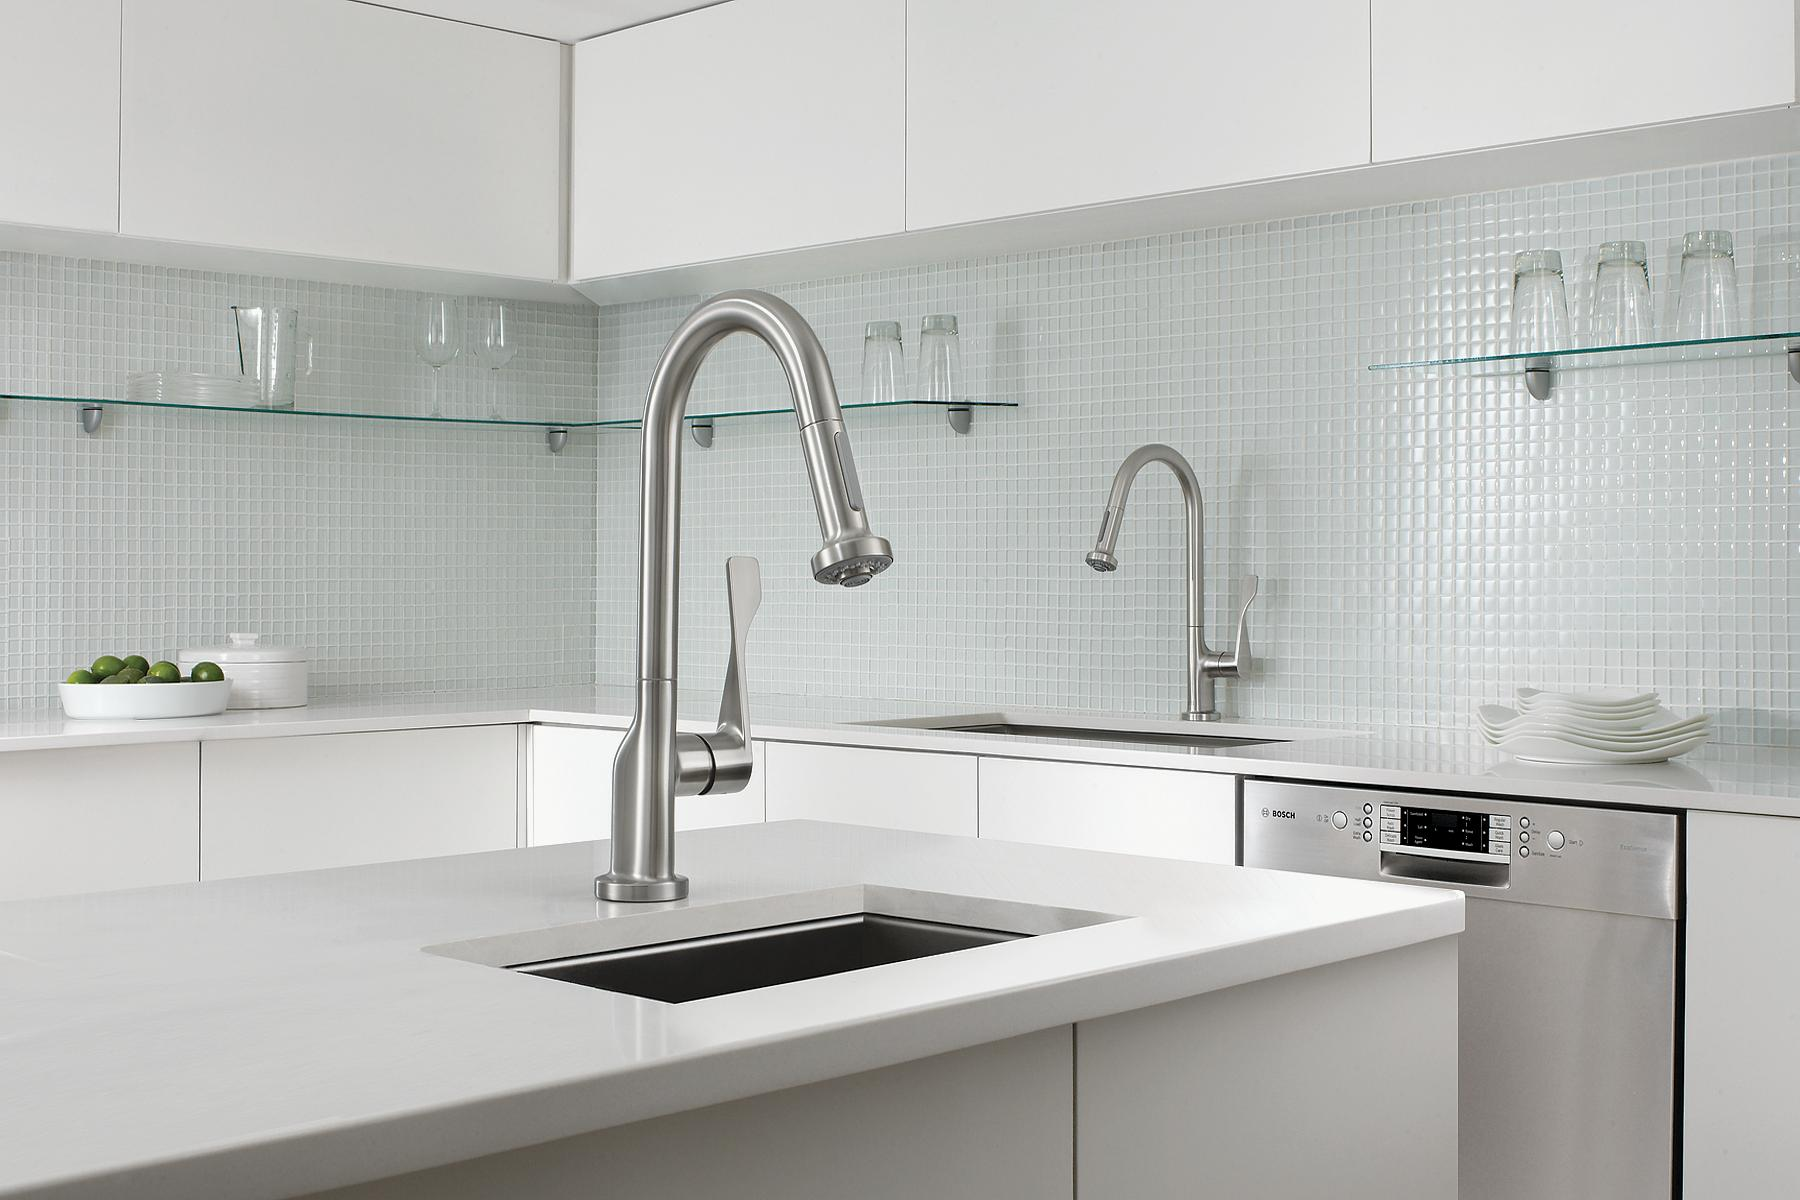 Kitchen Faucet Installation Cost